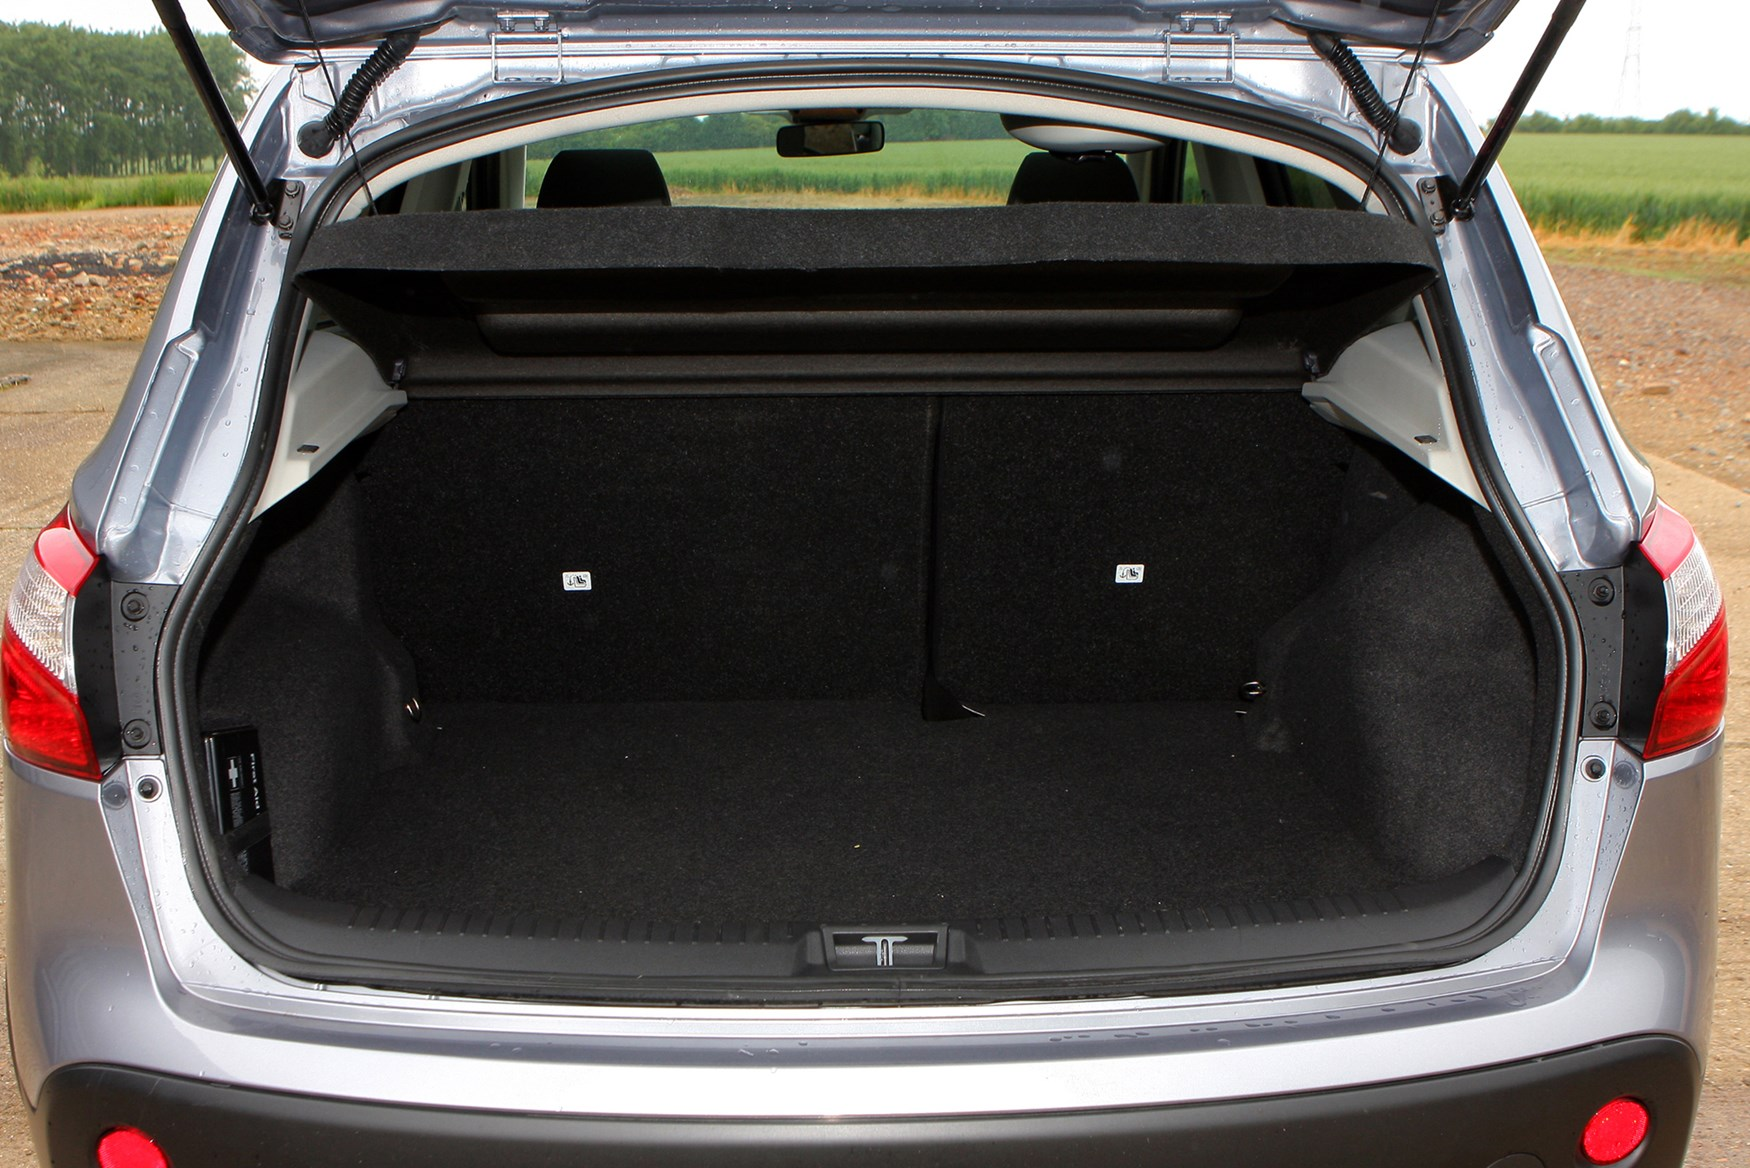 Nissan Qashqai Station Wagon (2007 - 2013) Features, Equipment and ...